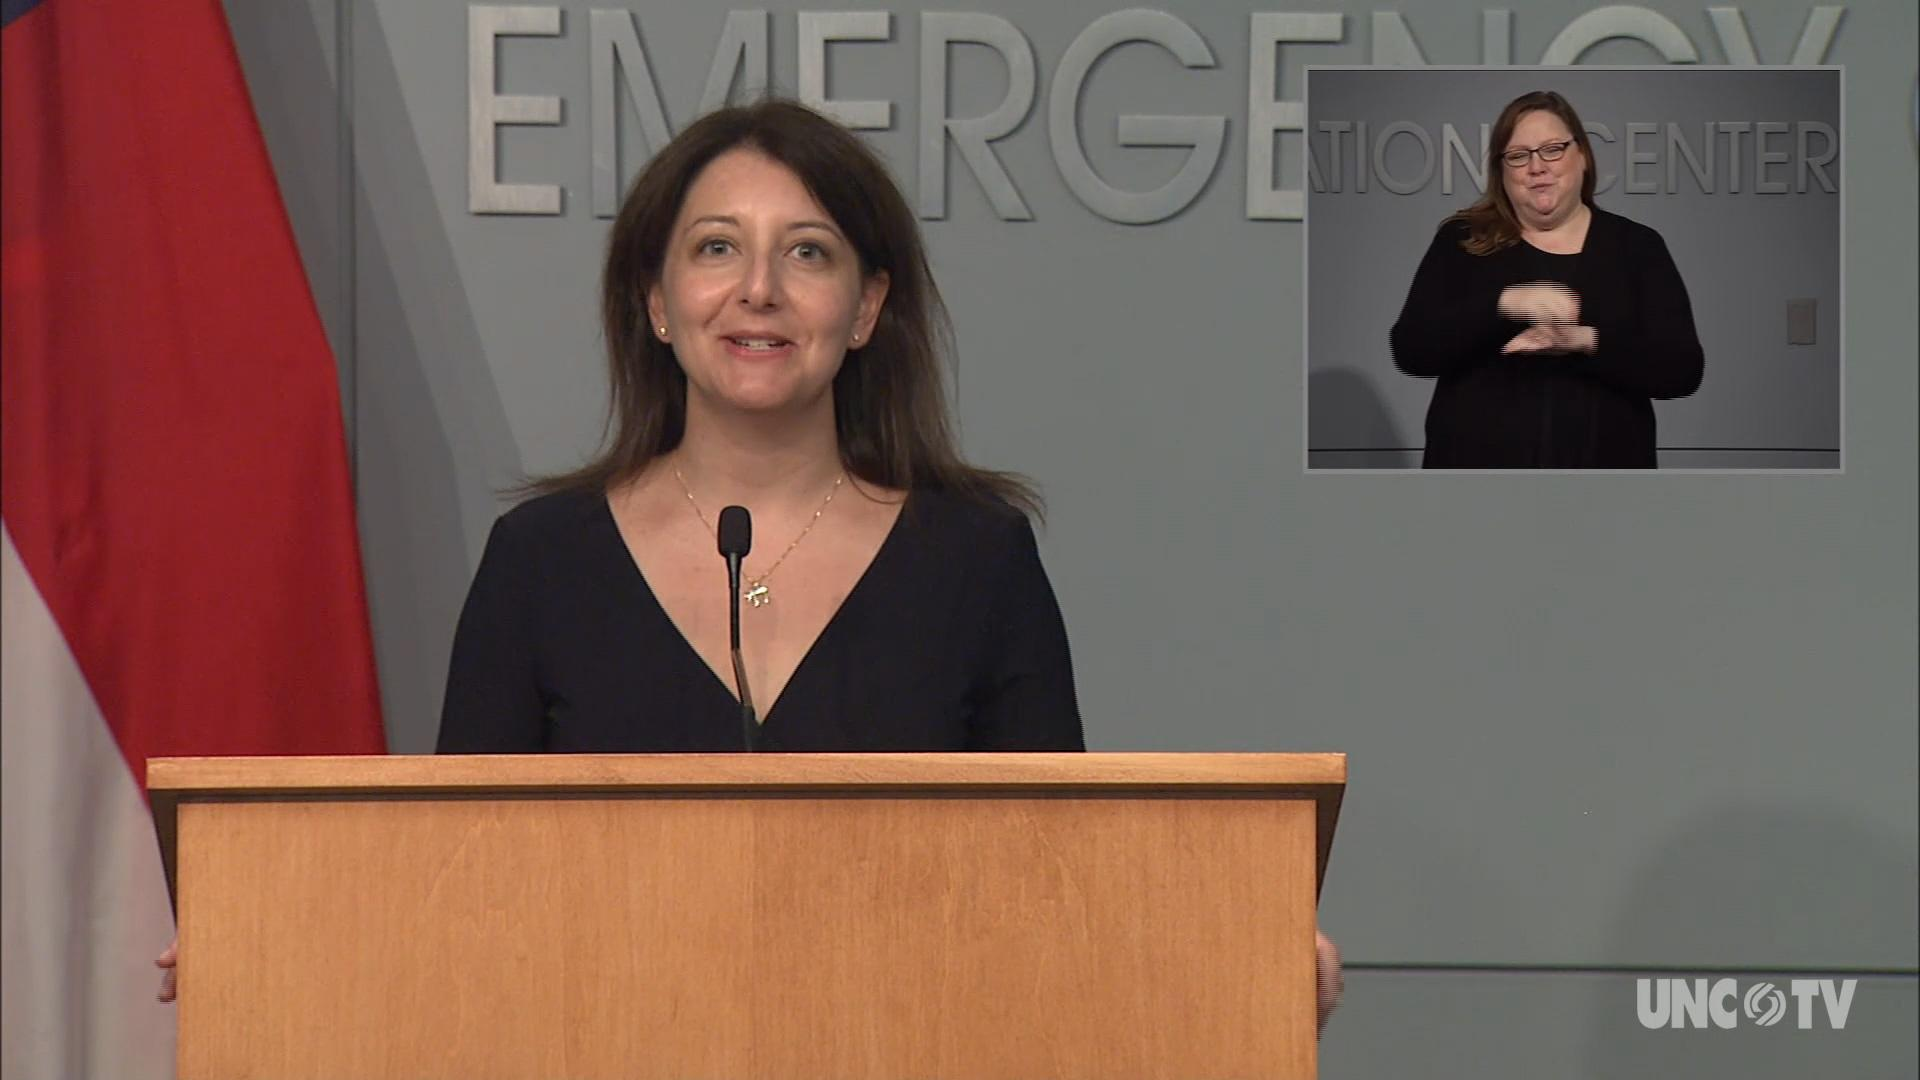 07/07/20 Dr. Mandy Cohen Briefing (English)